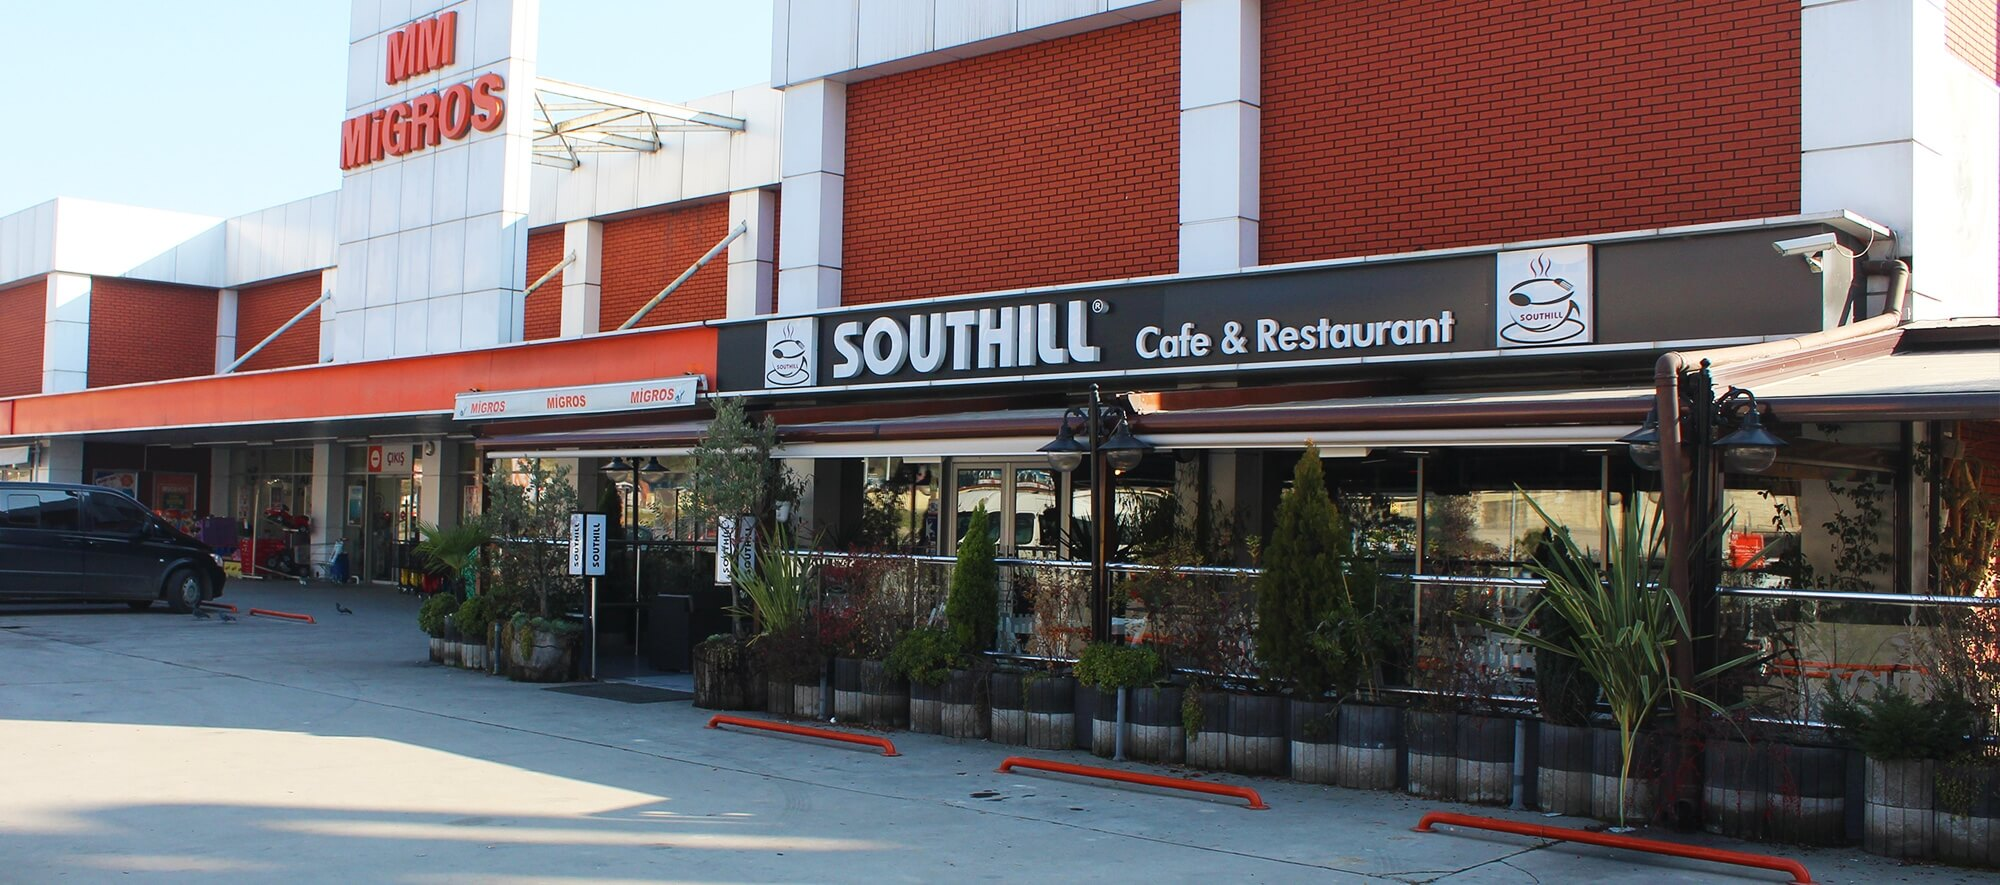 Southill Cafe & Restaurant